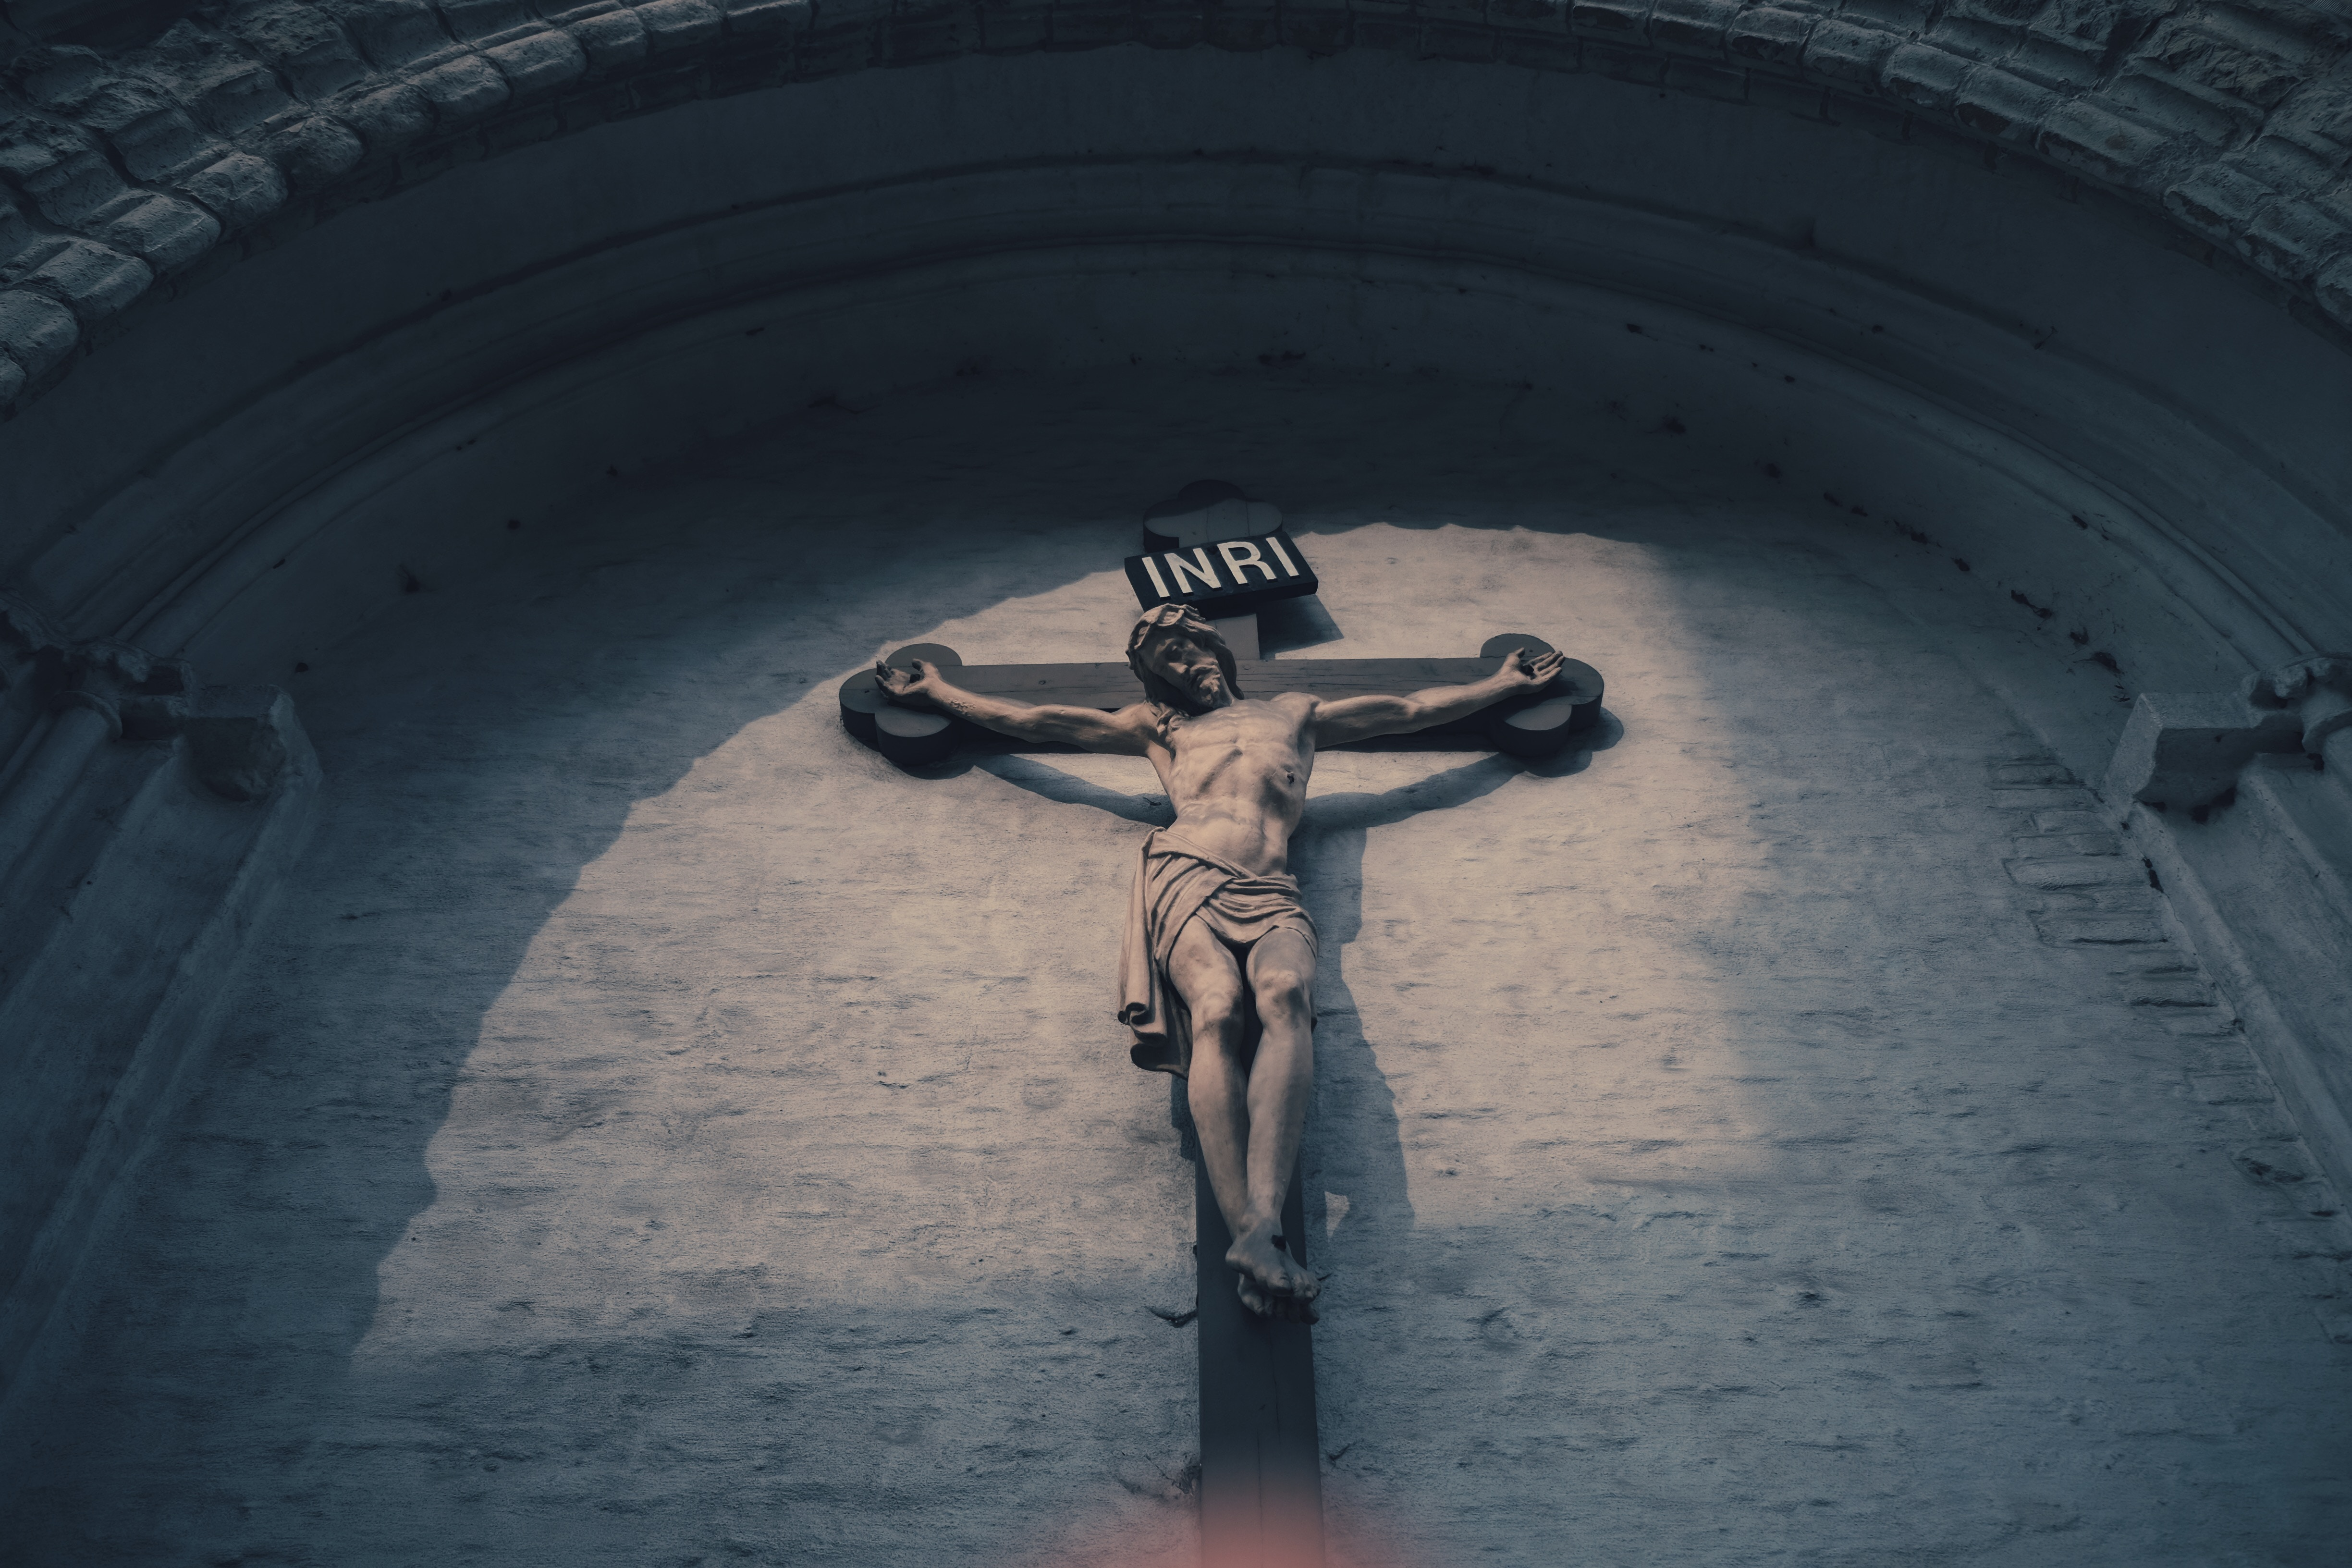 Sculpture of Jesus on the cross. Photo by Thuong Do on Unsplash